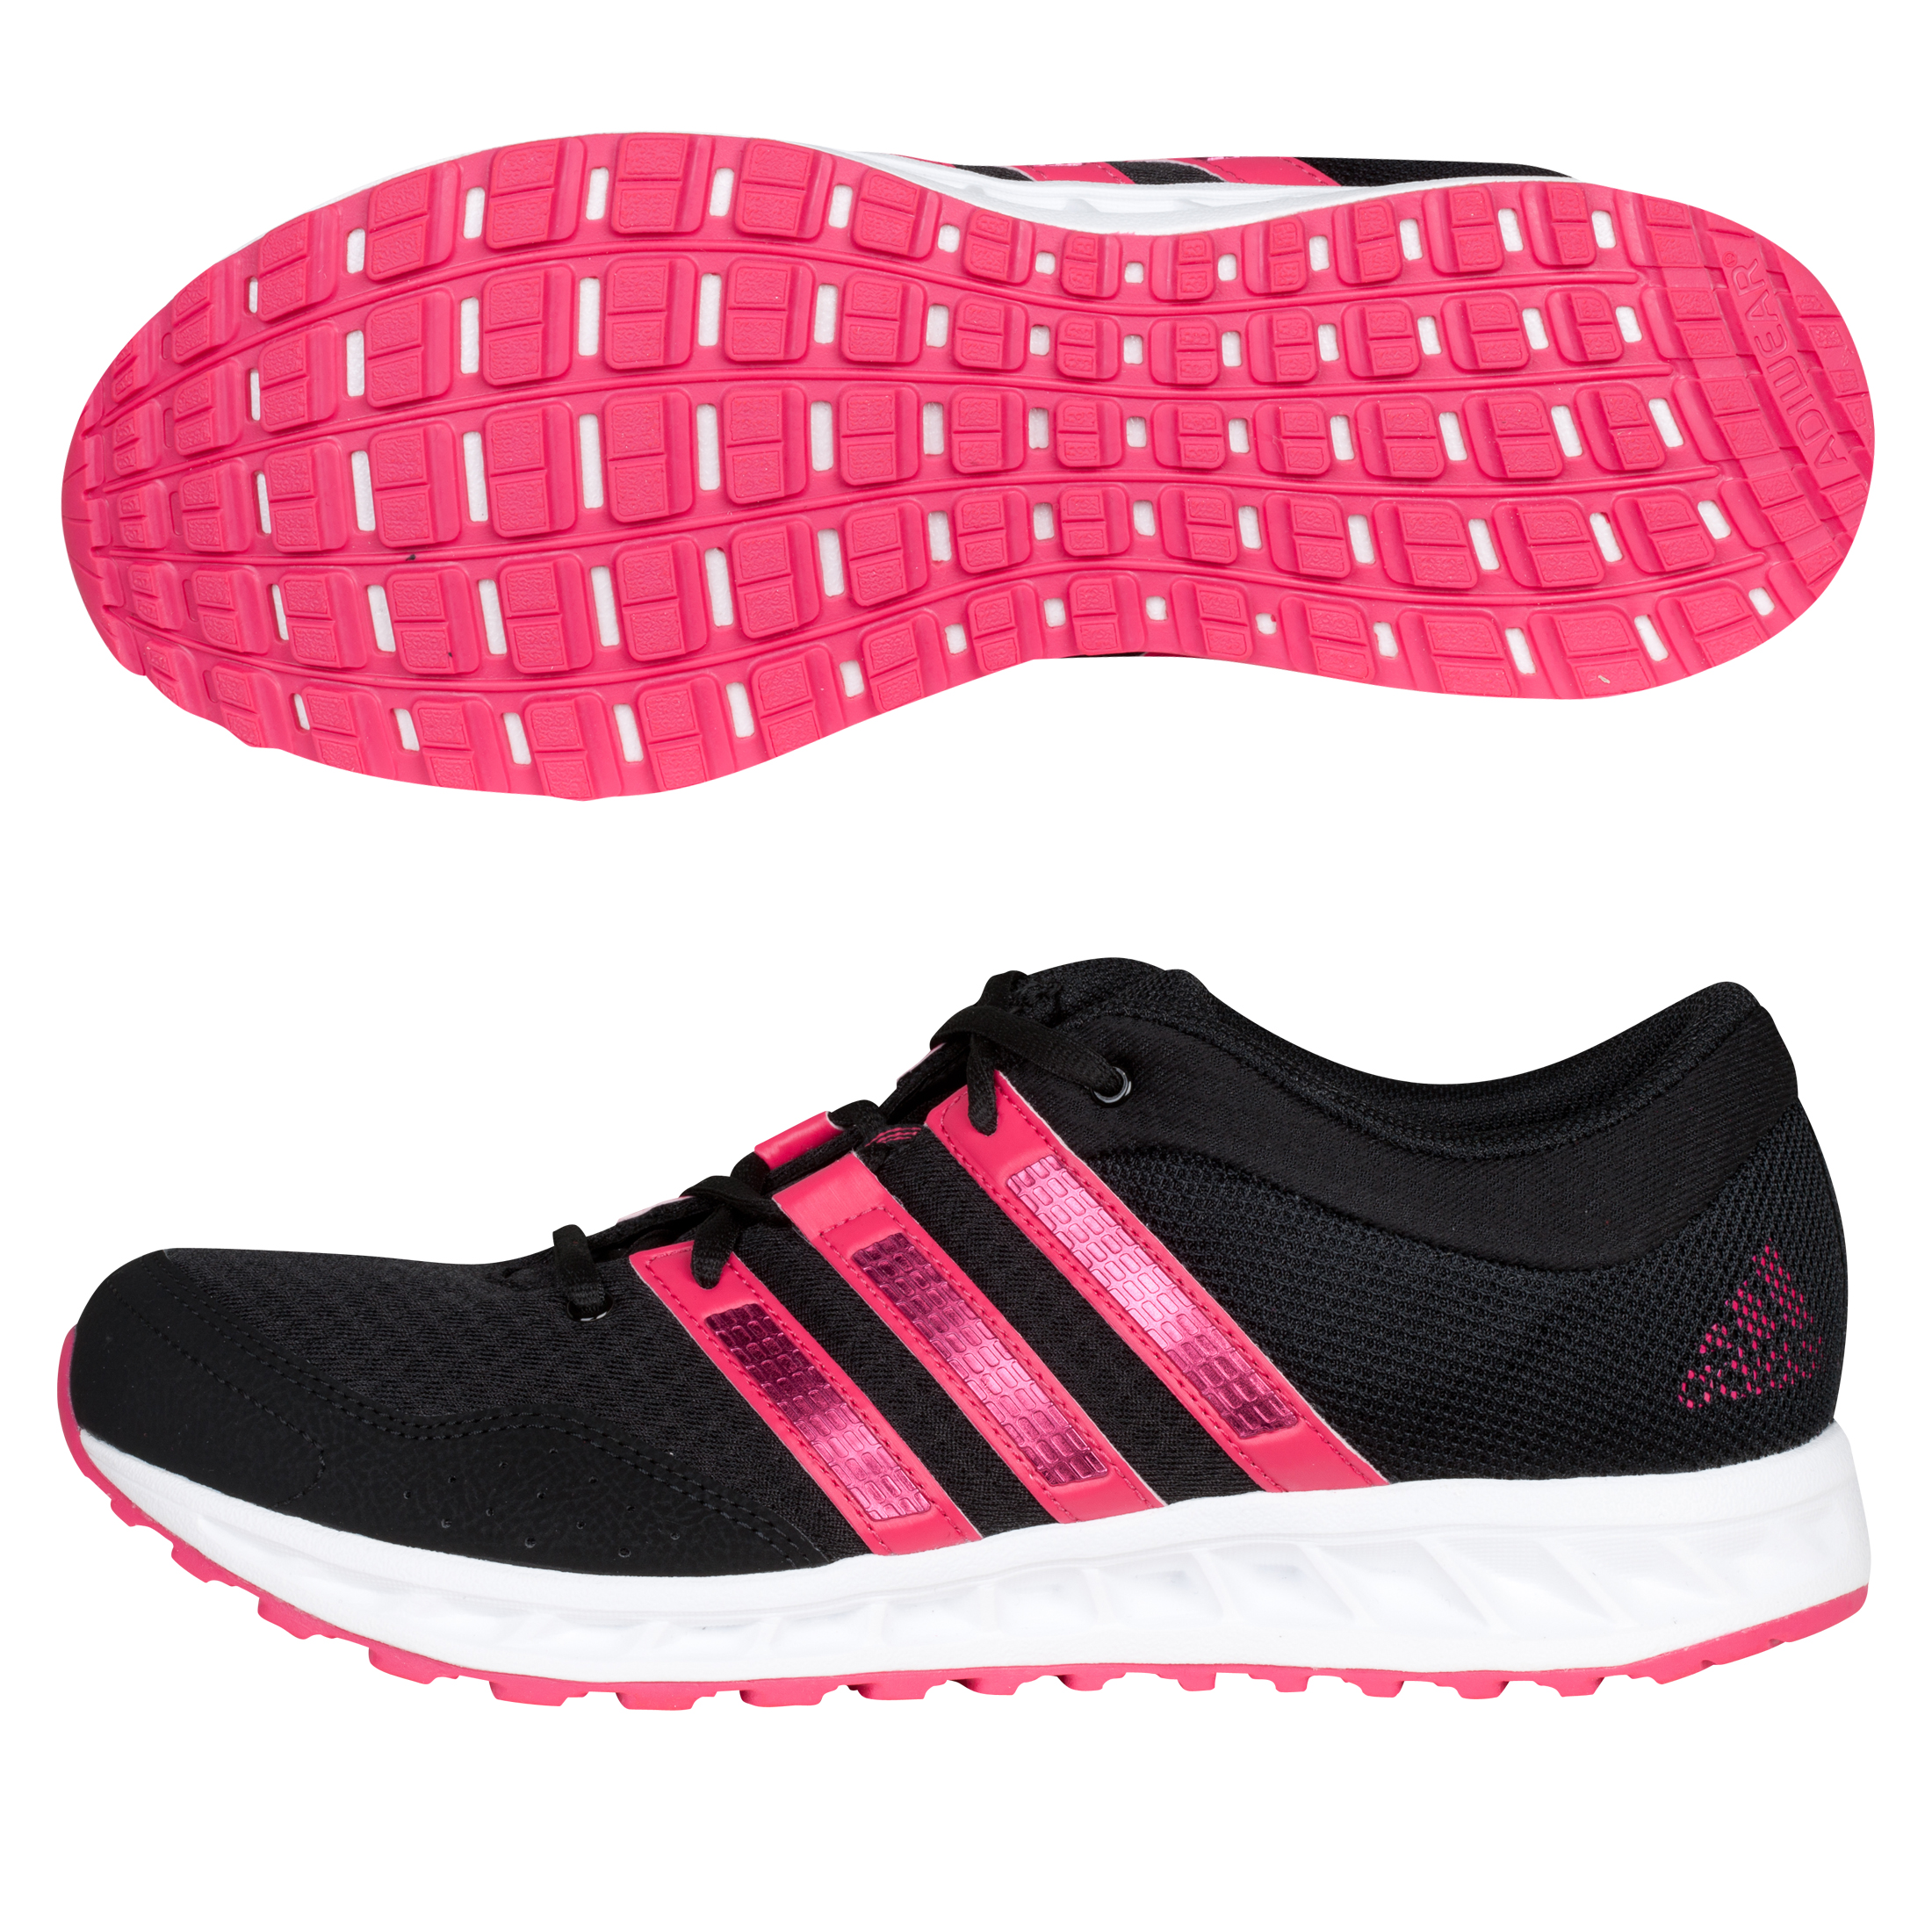 Adidas Falcon Elite 2 Running Trainers - Black/Bright Pink/Running White - Womens